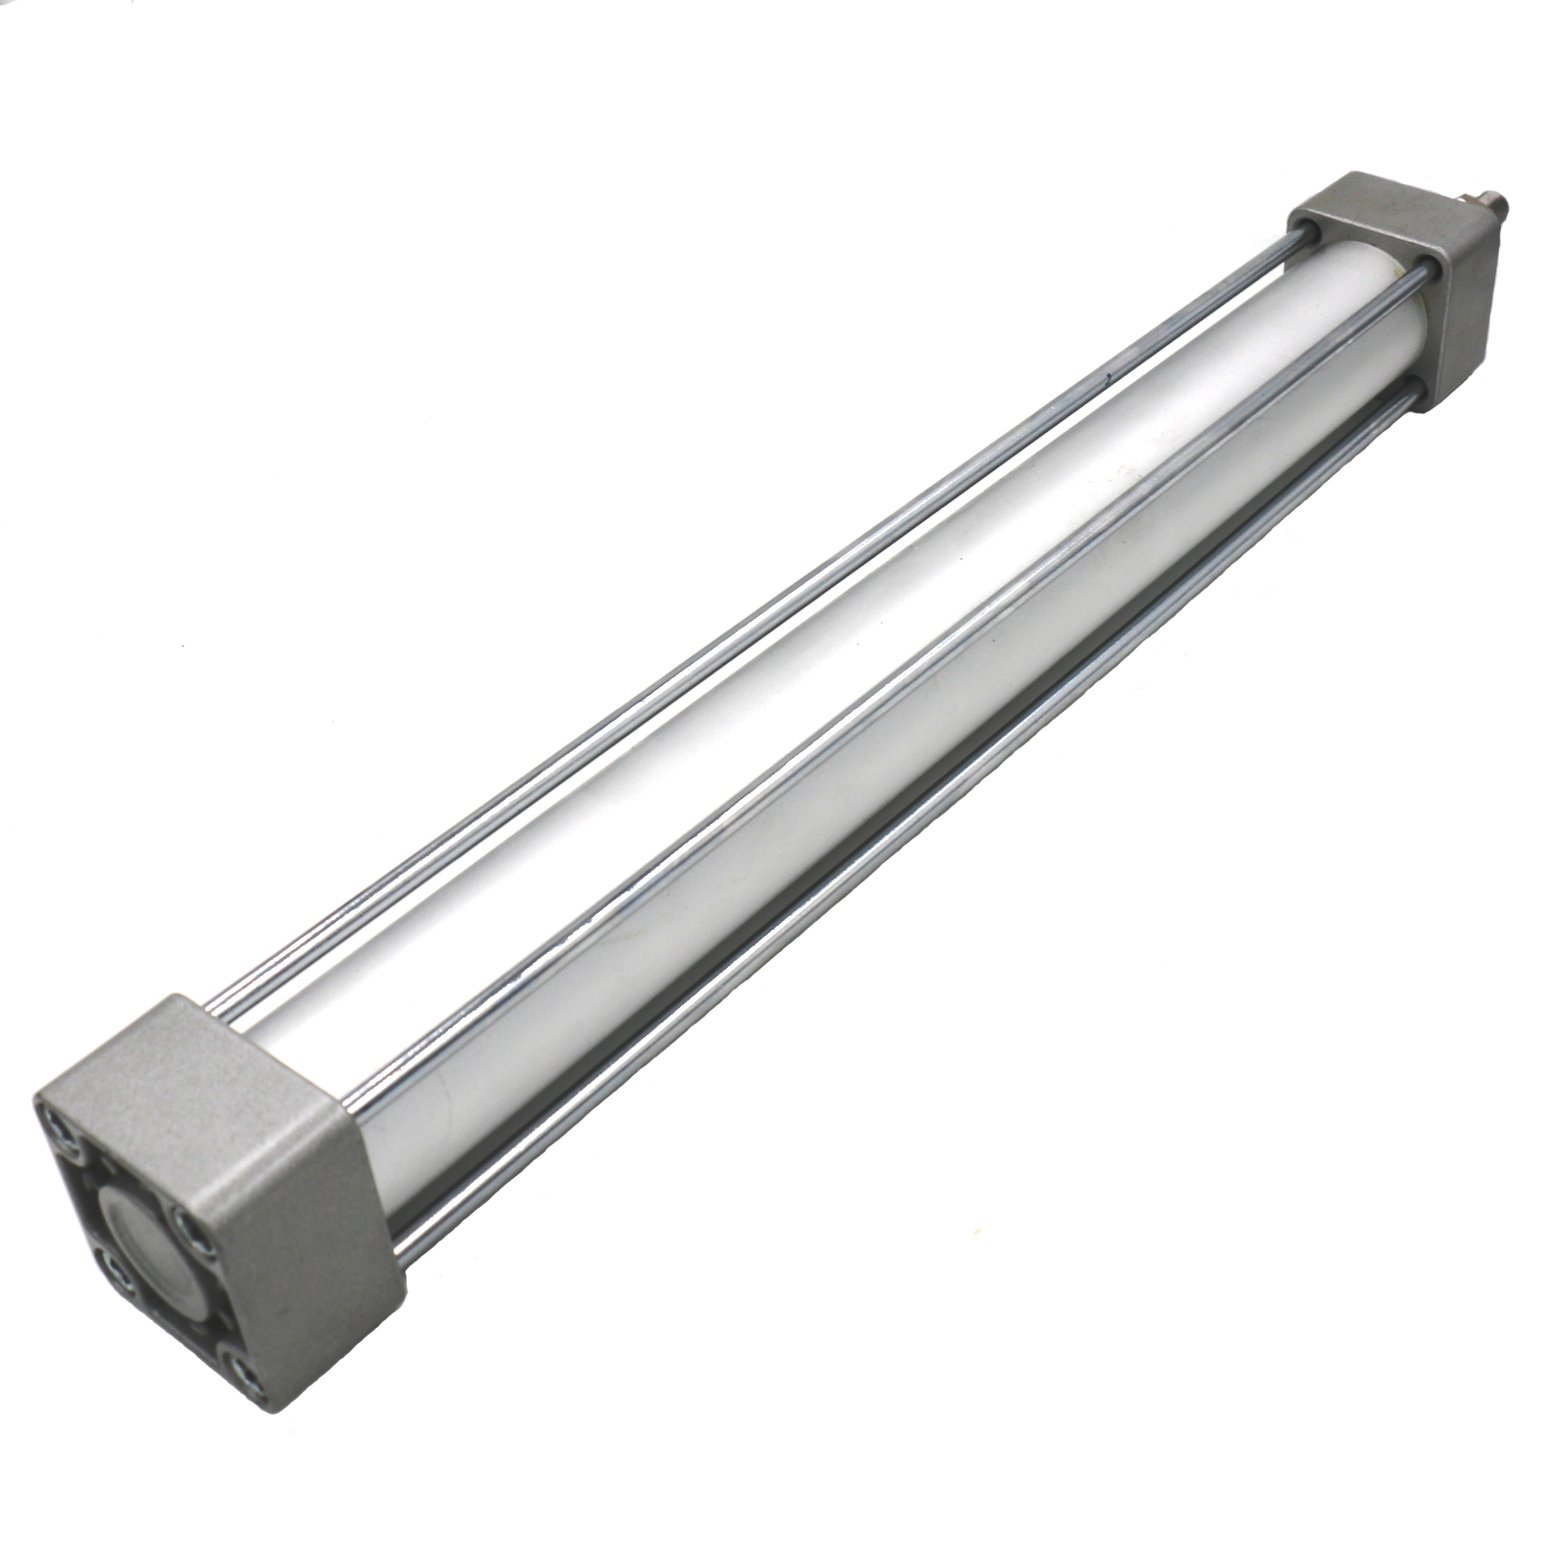 Baomain Pneumatic Air Cylinder SC 32 x 500 PT 1/8, Bore: 1 1/4 inch, Stroke: 20 inch, Screwed Piston Rod Dual Action 1 Mpa